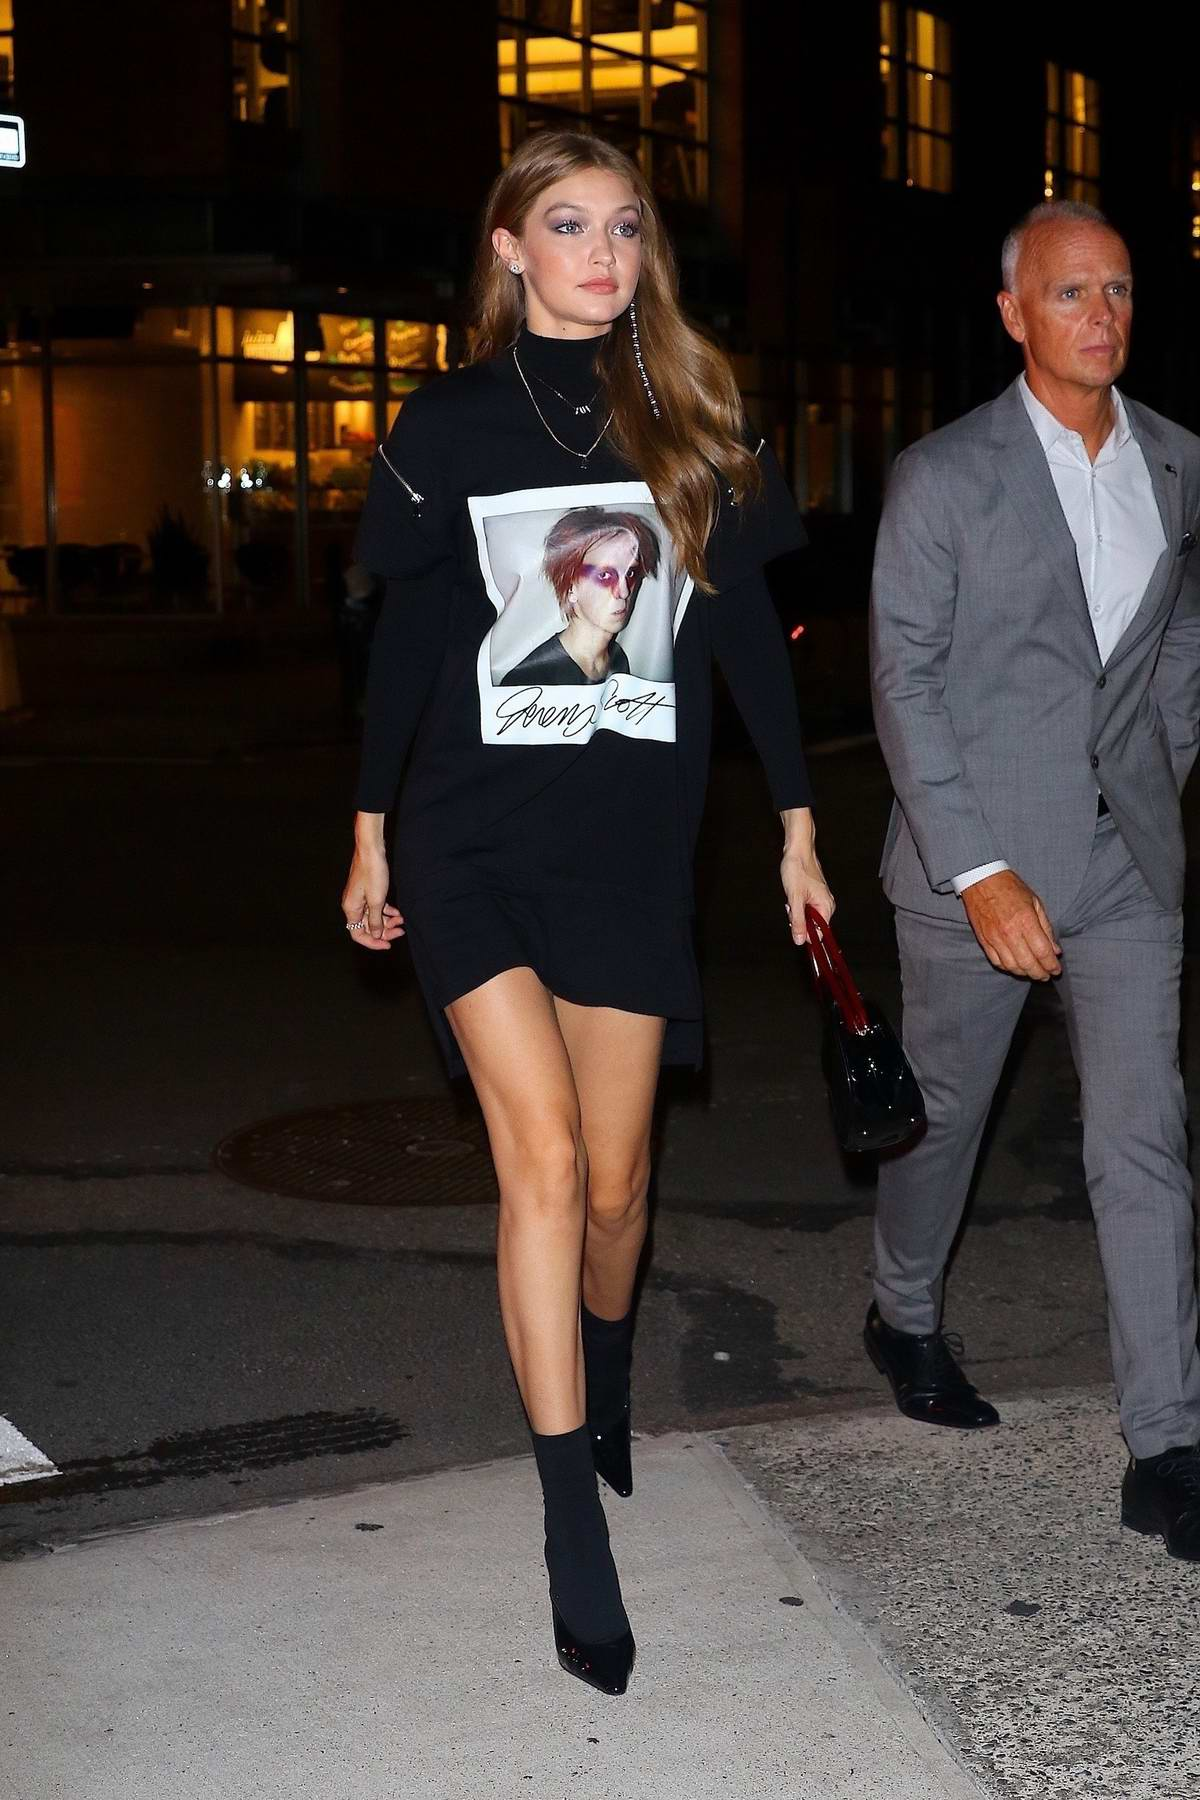 Gigi Hadid stepped out in a Jeremy Scott graphic tee as she heads out to dinner in New York City